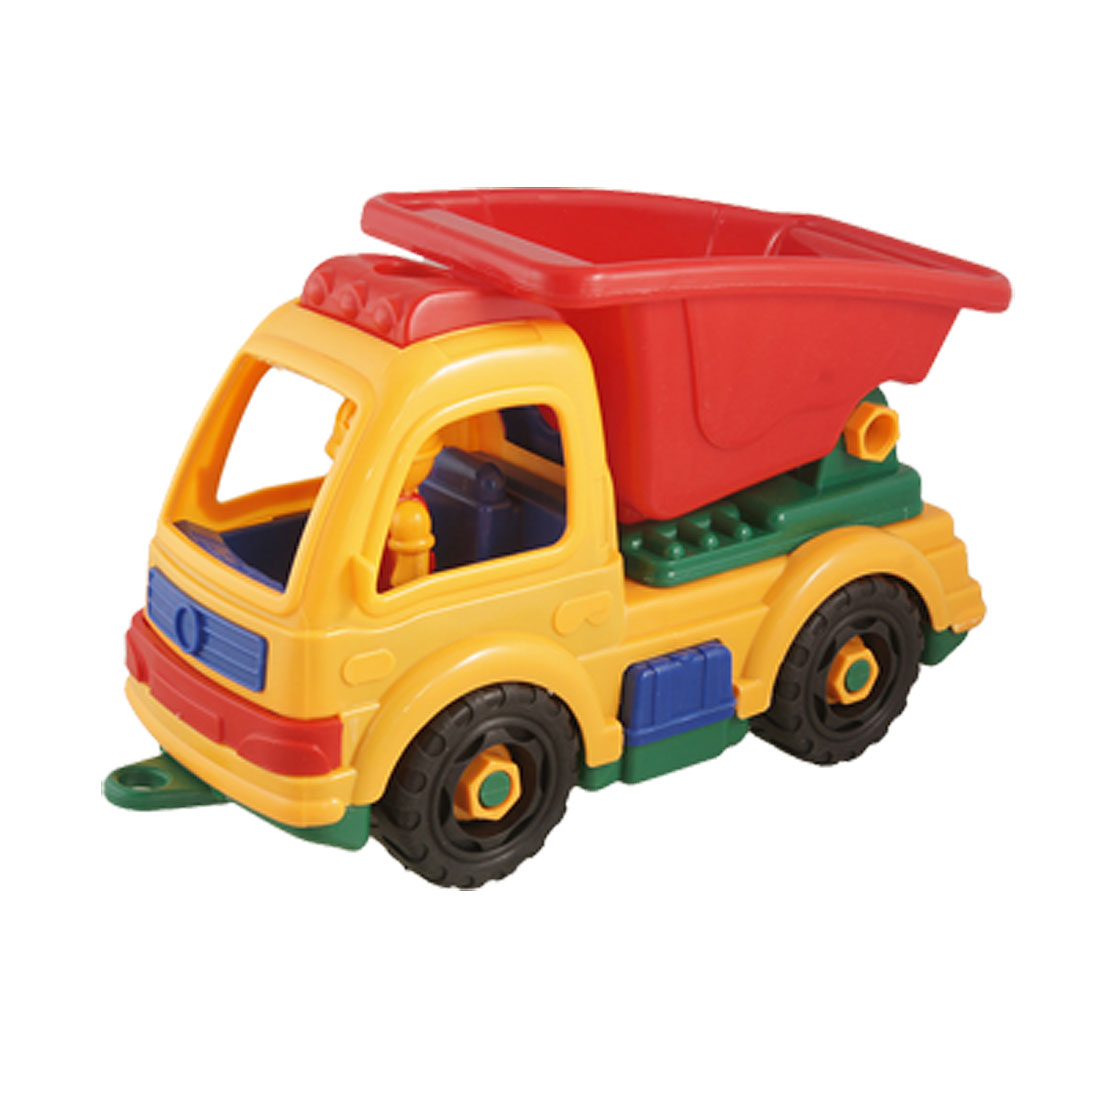 Child Yellow Red Plastic DIY Assembly Engineering Van Toy Gift